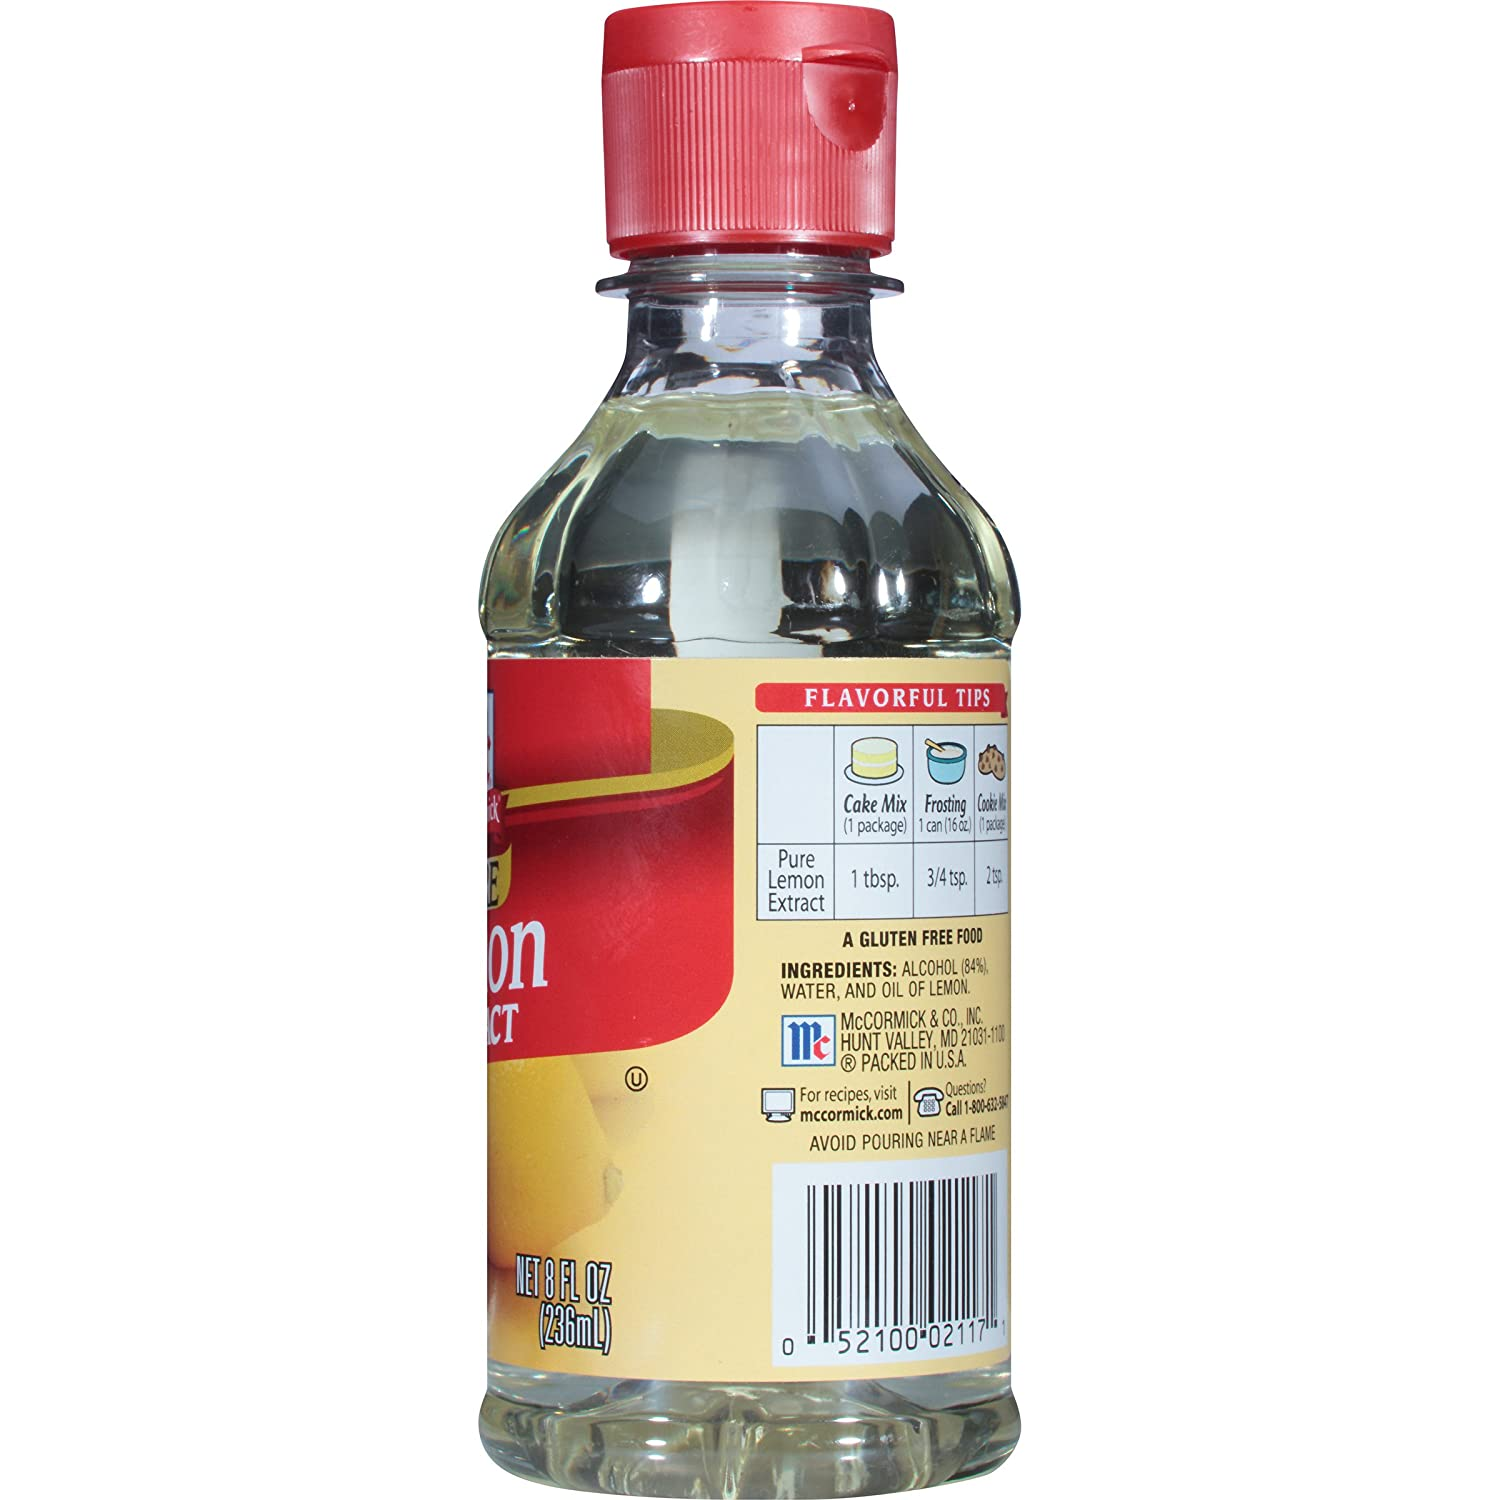 Nutrition News: mccormick pure vanilla extract nutrition facts